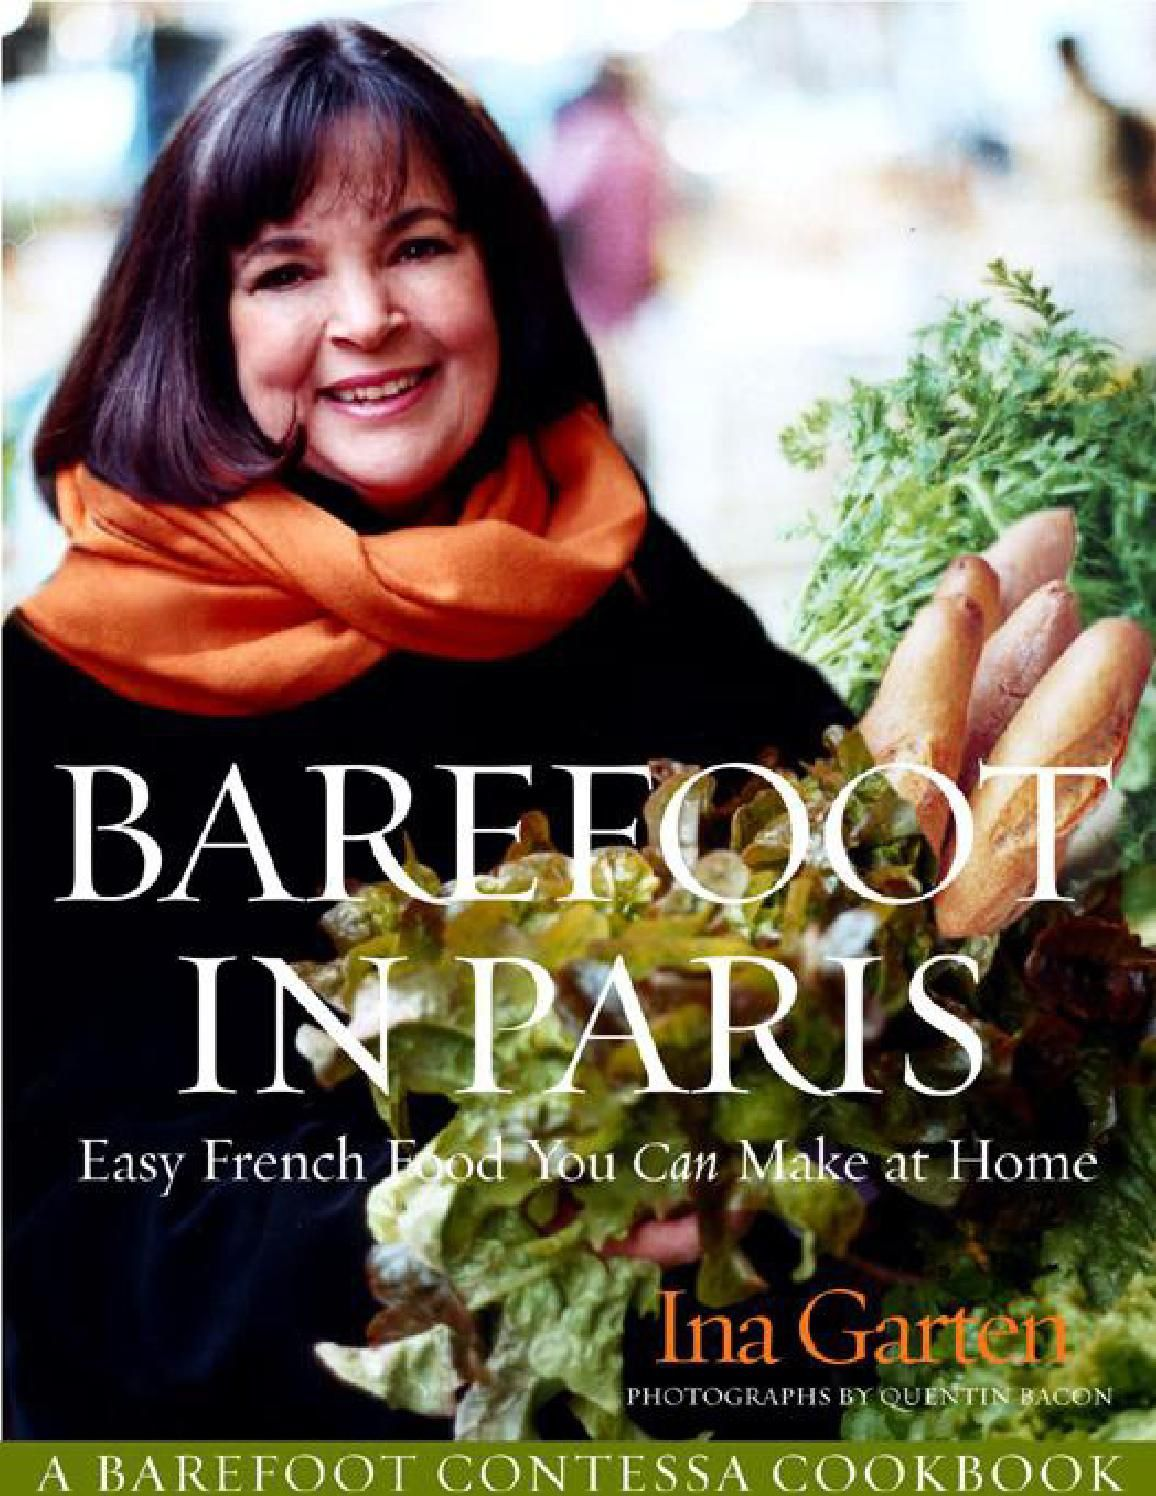 Barefoot In Paris: Easy French Food You Can Make At Home: Ina Garten